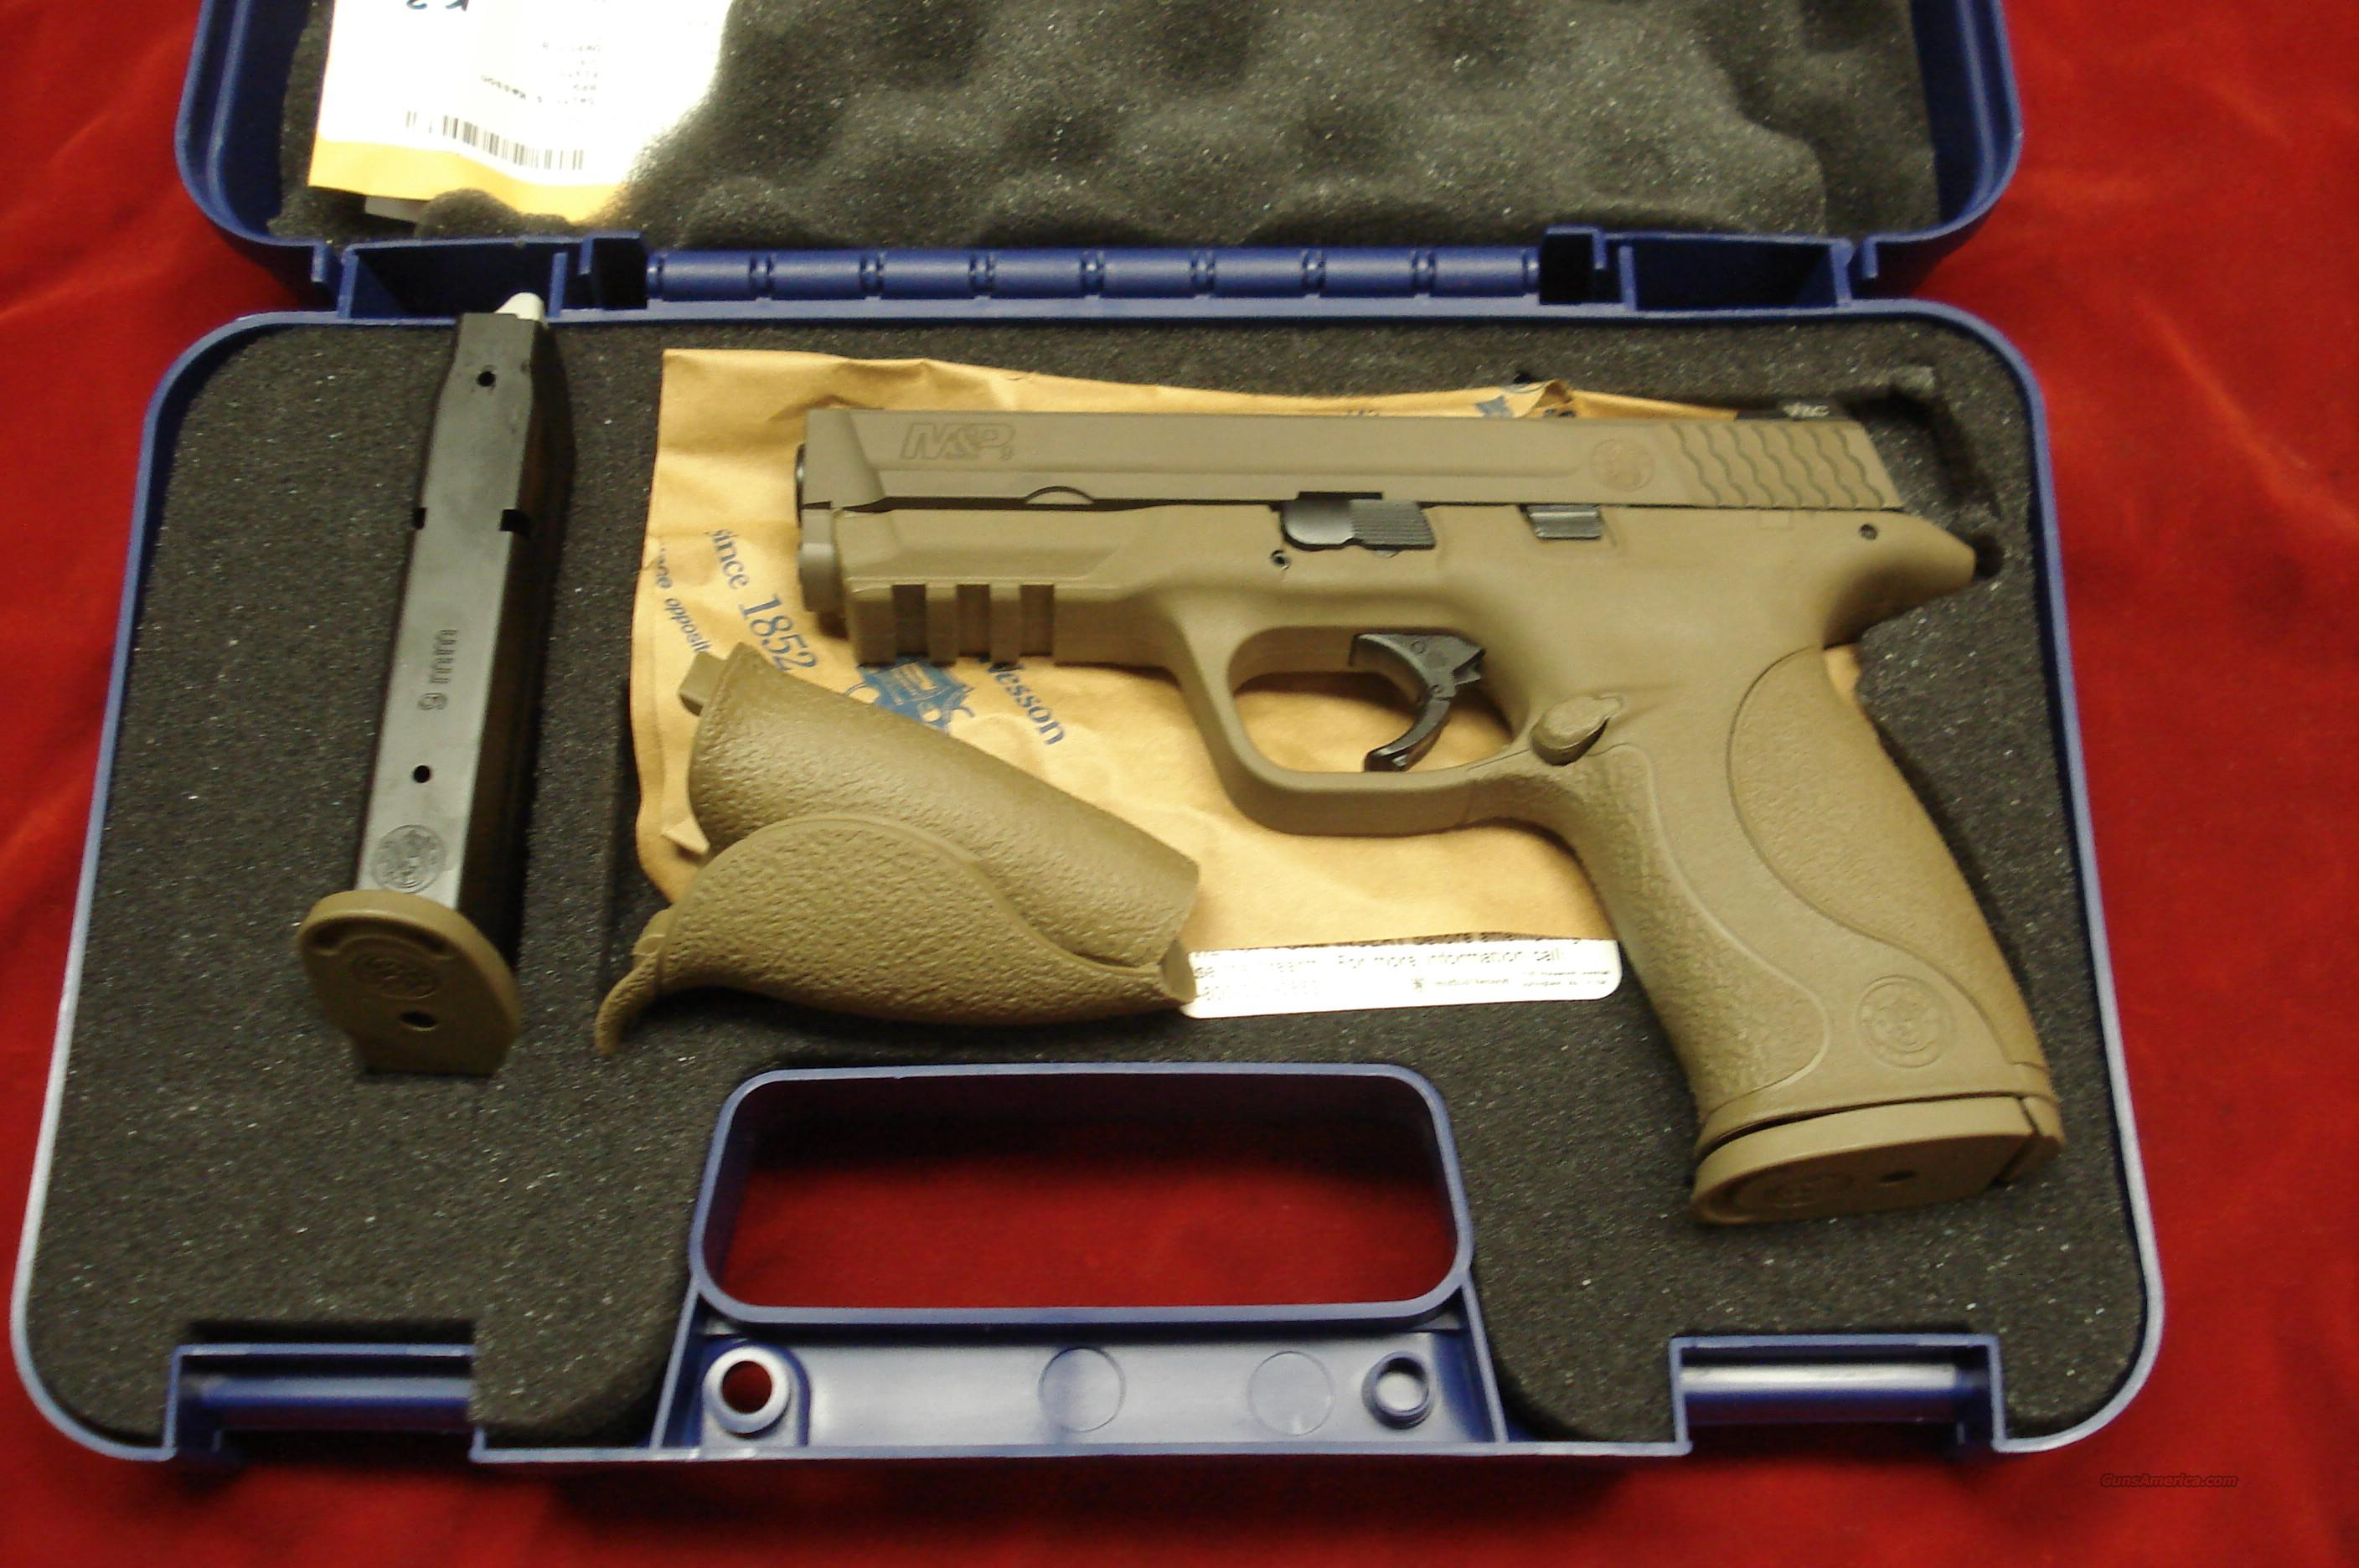 SMITH AND WESSON M&P VTAC 9MM FLAT DARK EARTH NEW  (209921)  Guns > Pistols > Smith & Wesson Pistols - Autos > Polymer Frame